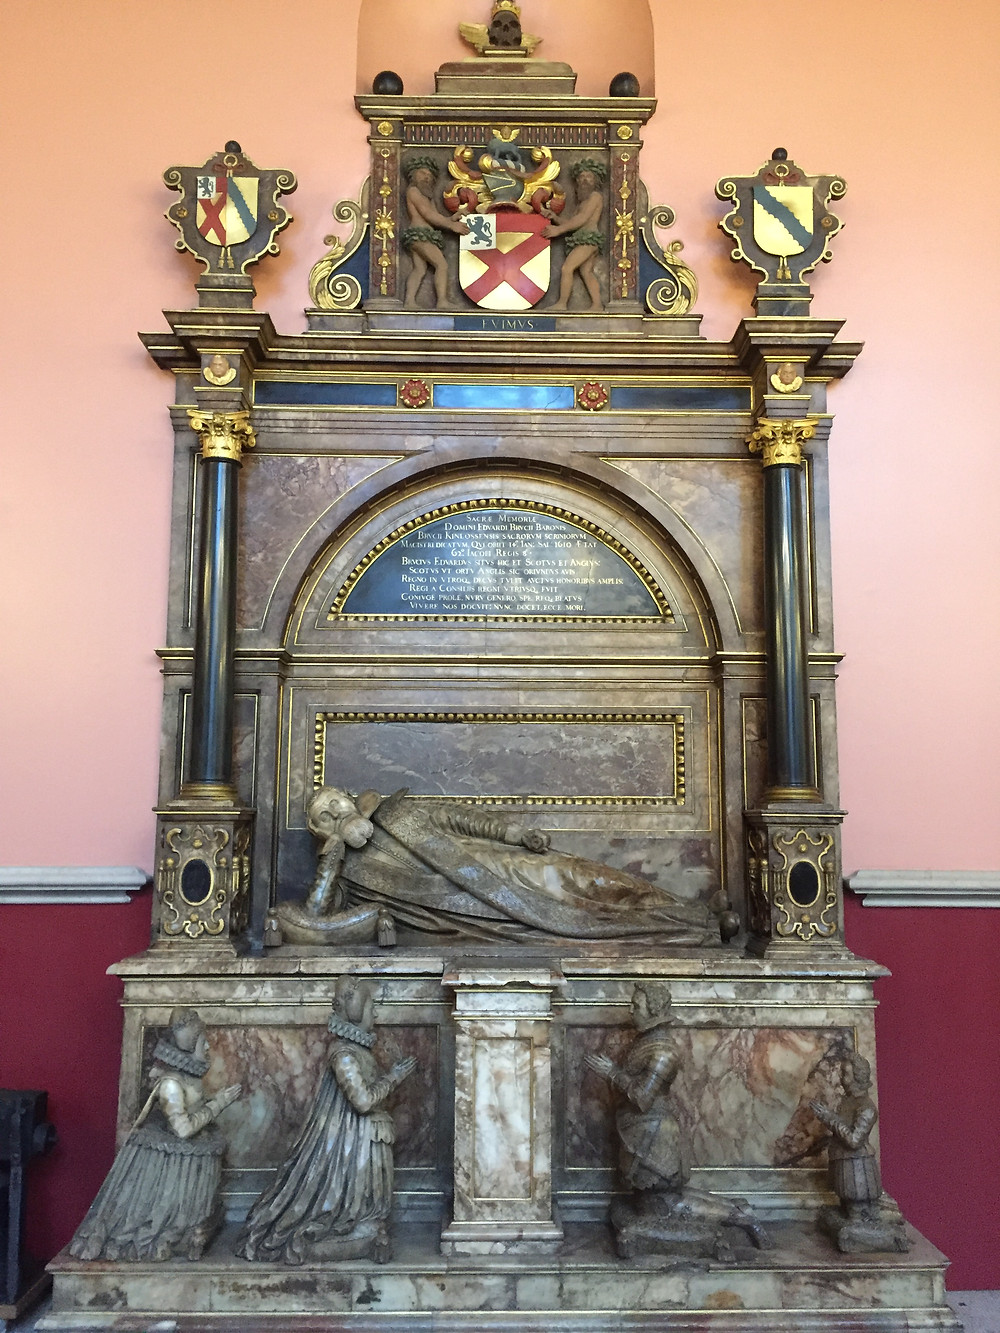 Edward Bruce's blinged out tomb at King's College London.